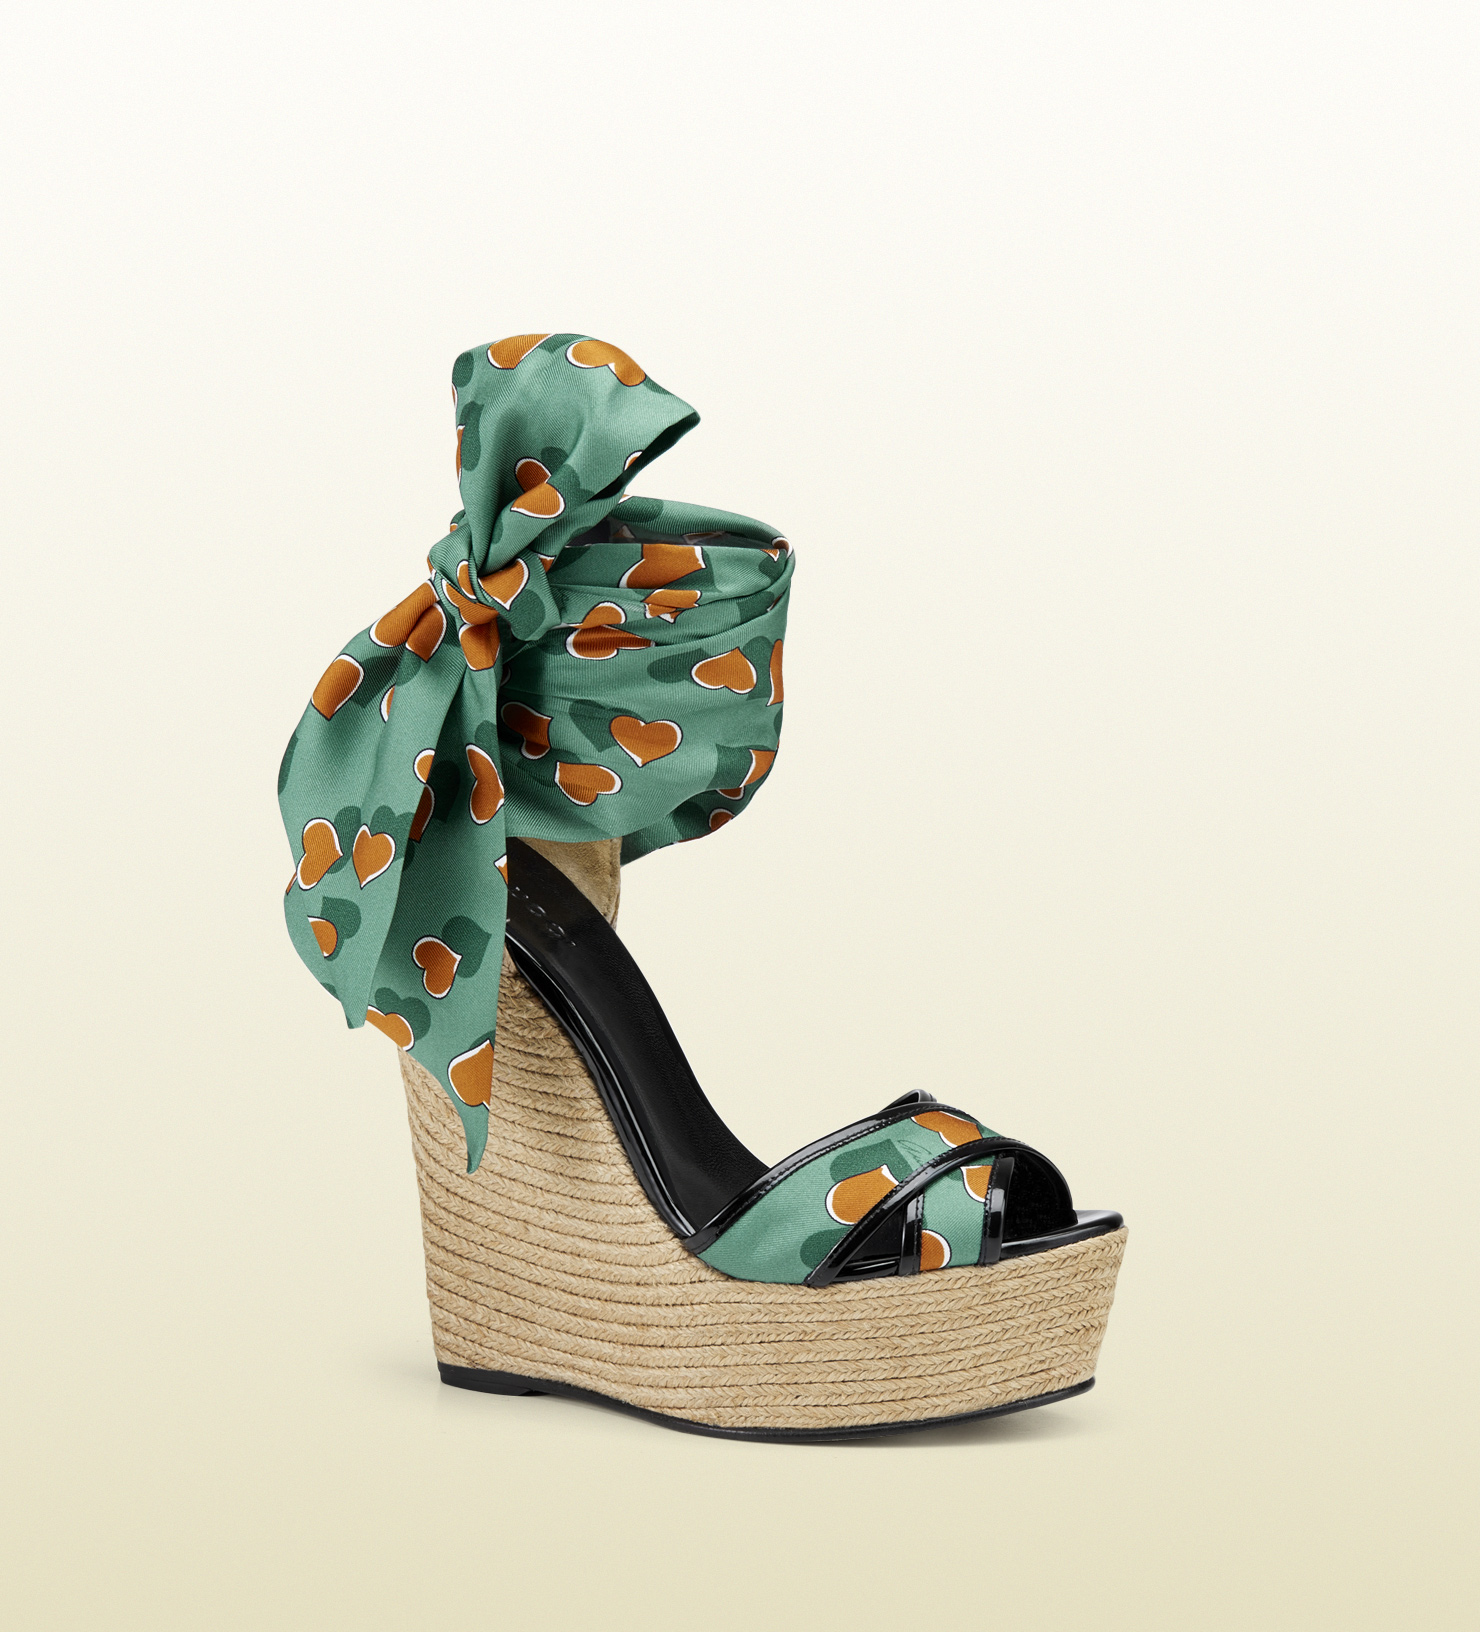 bed3c1ba8744 Lyst - Gucci Carolina Heartbeat Satin Tie Wedge Sandal in Green